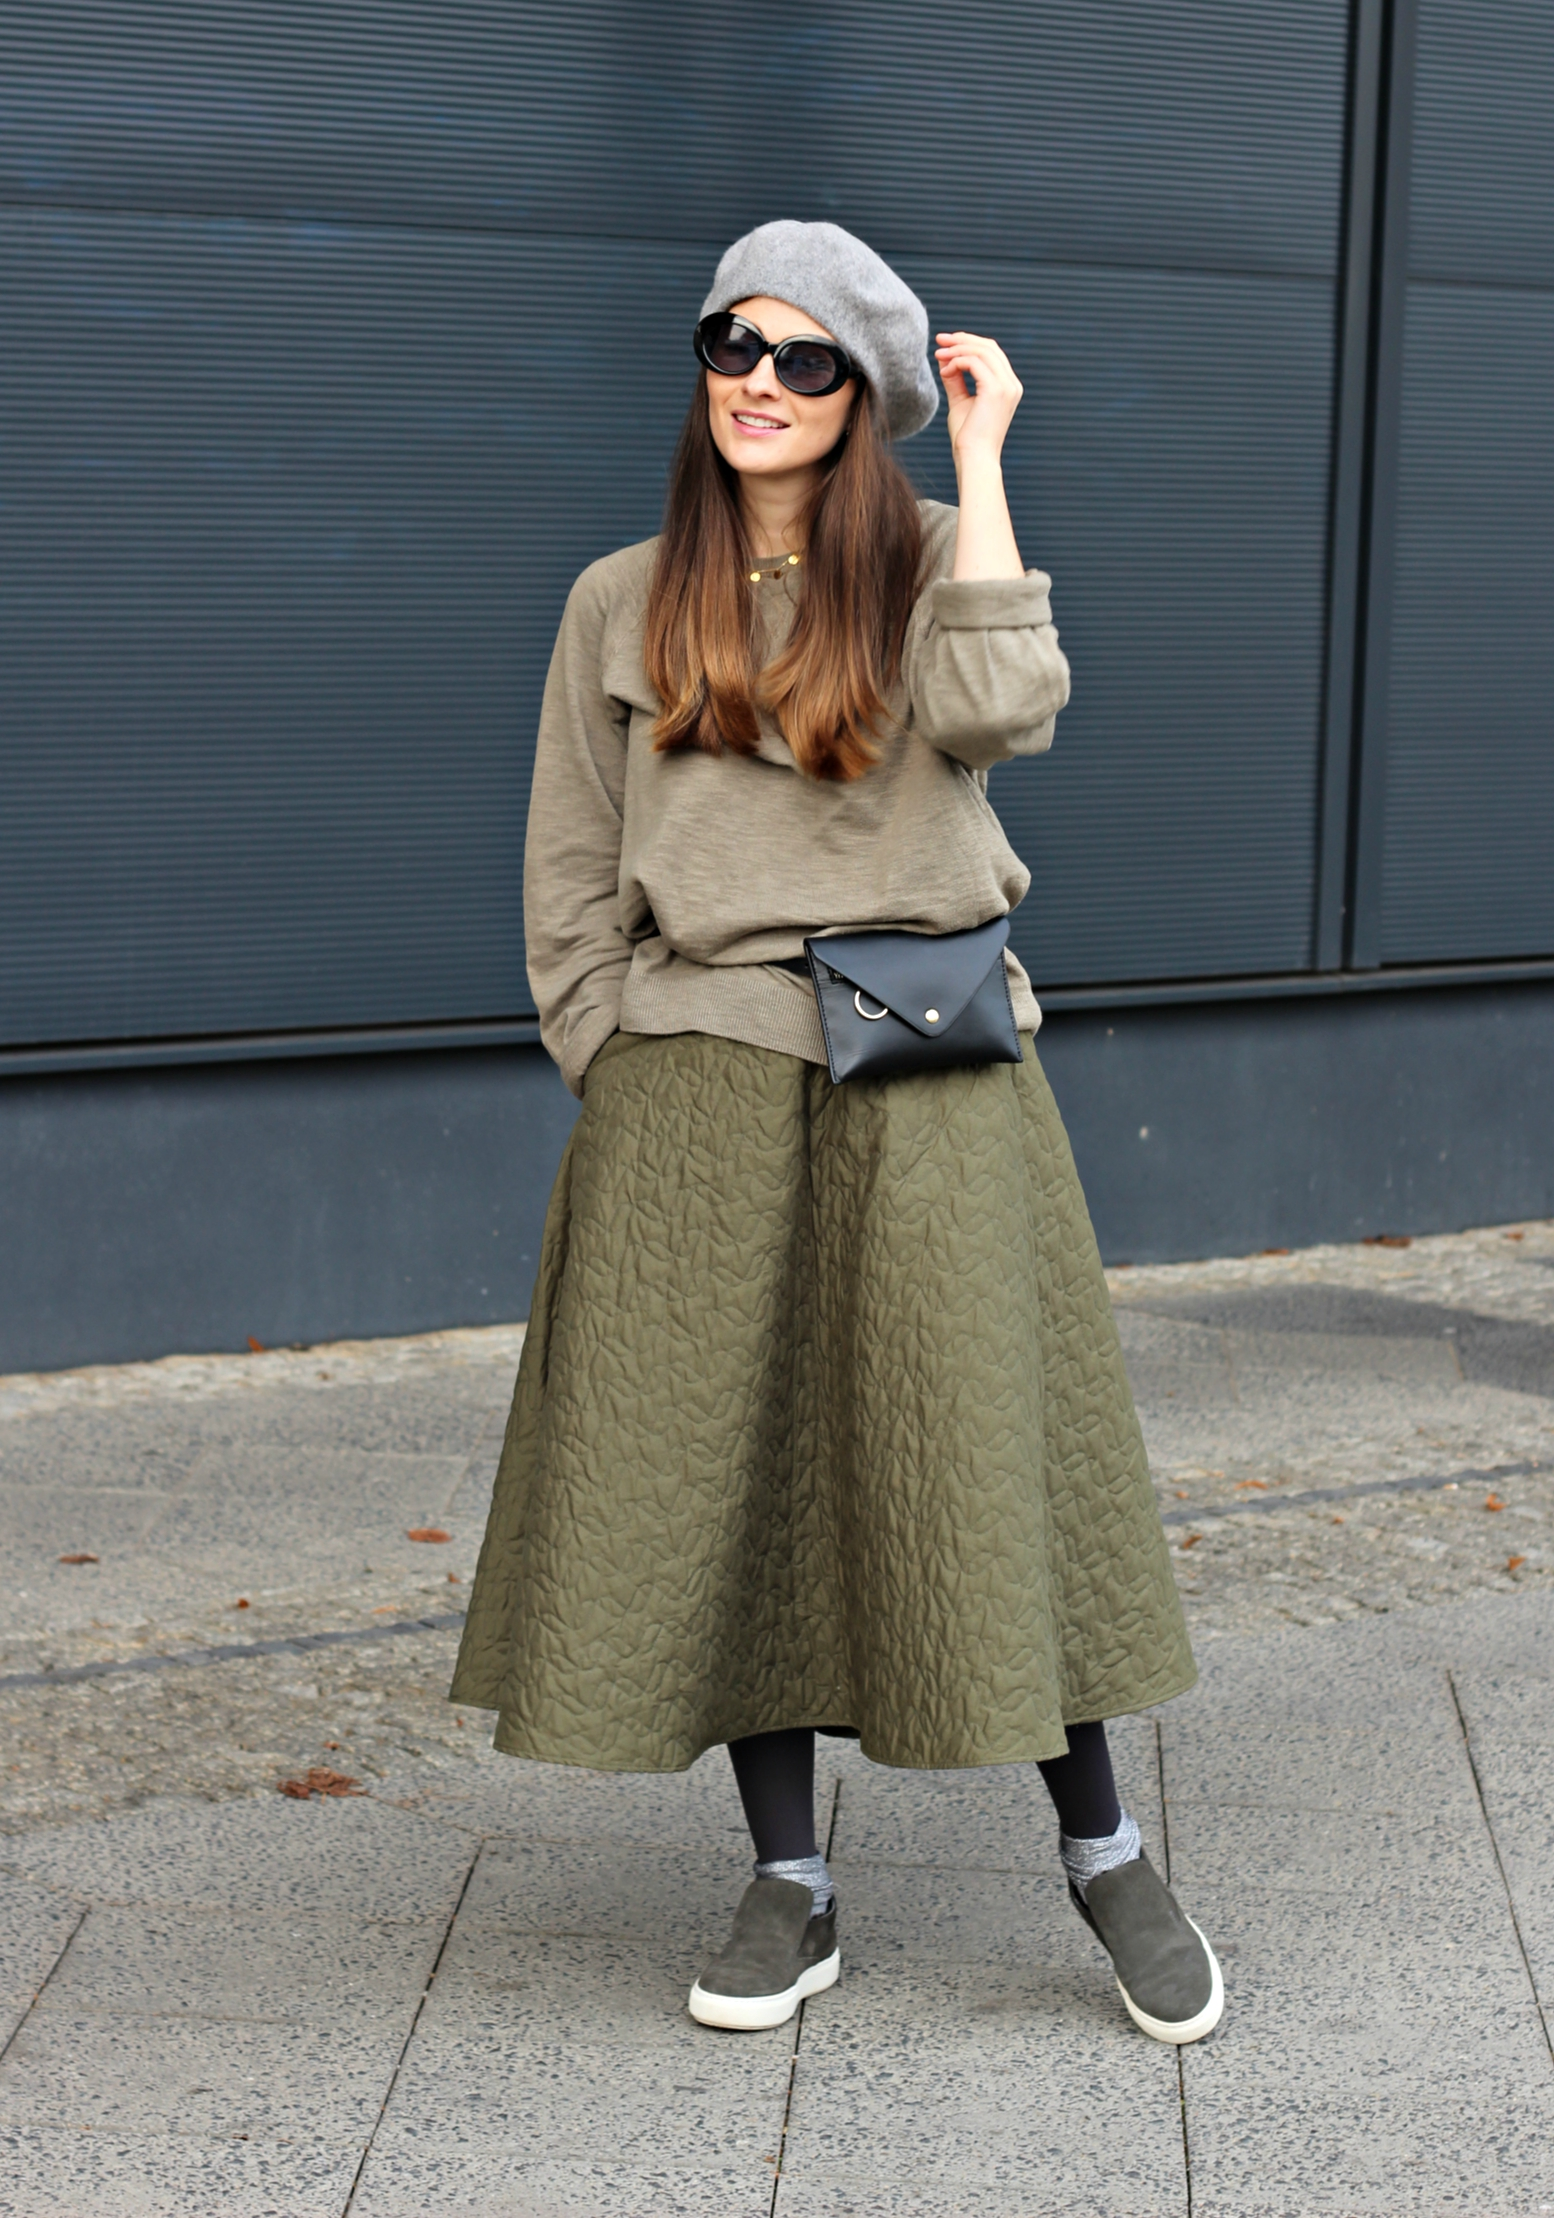 annaporter-shabbies-amsterdam-uniqlo-olive-green-look-casual-skirt-2